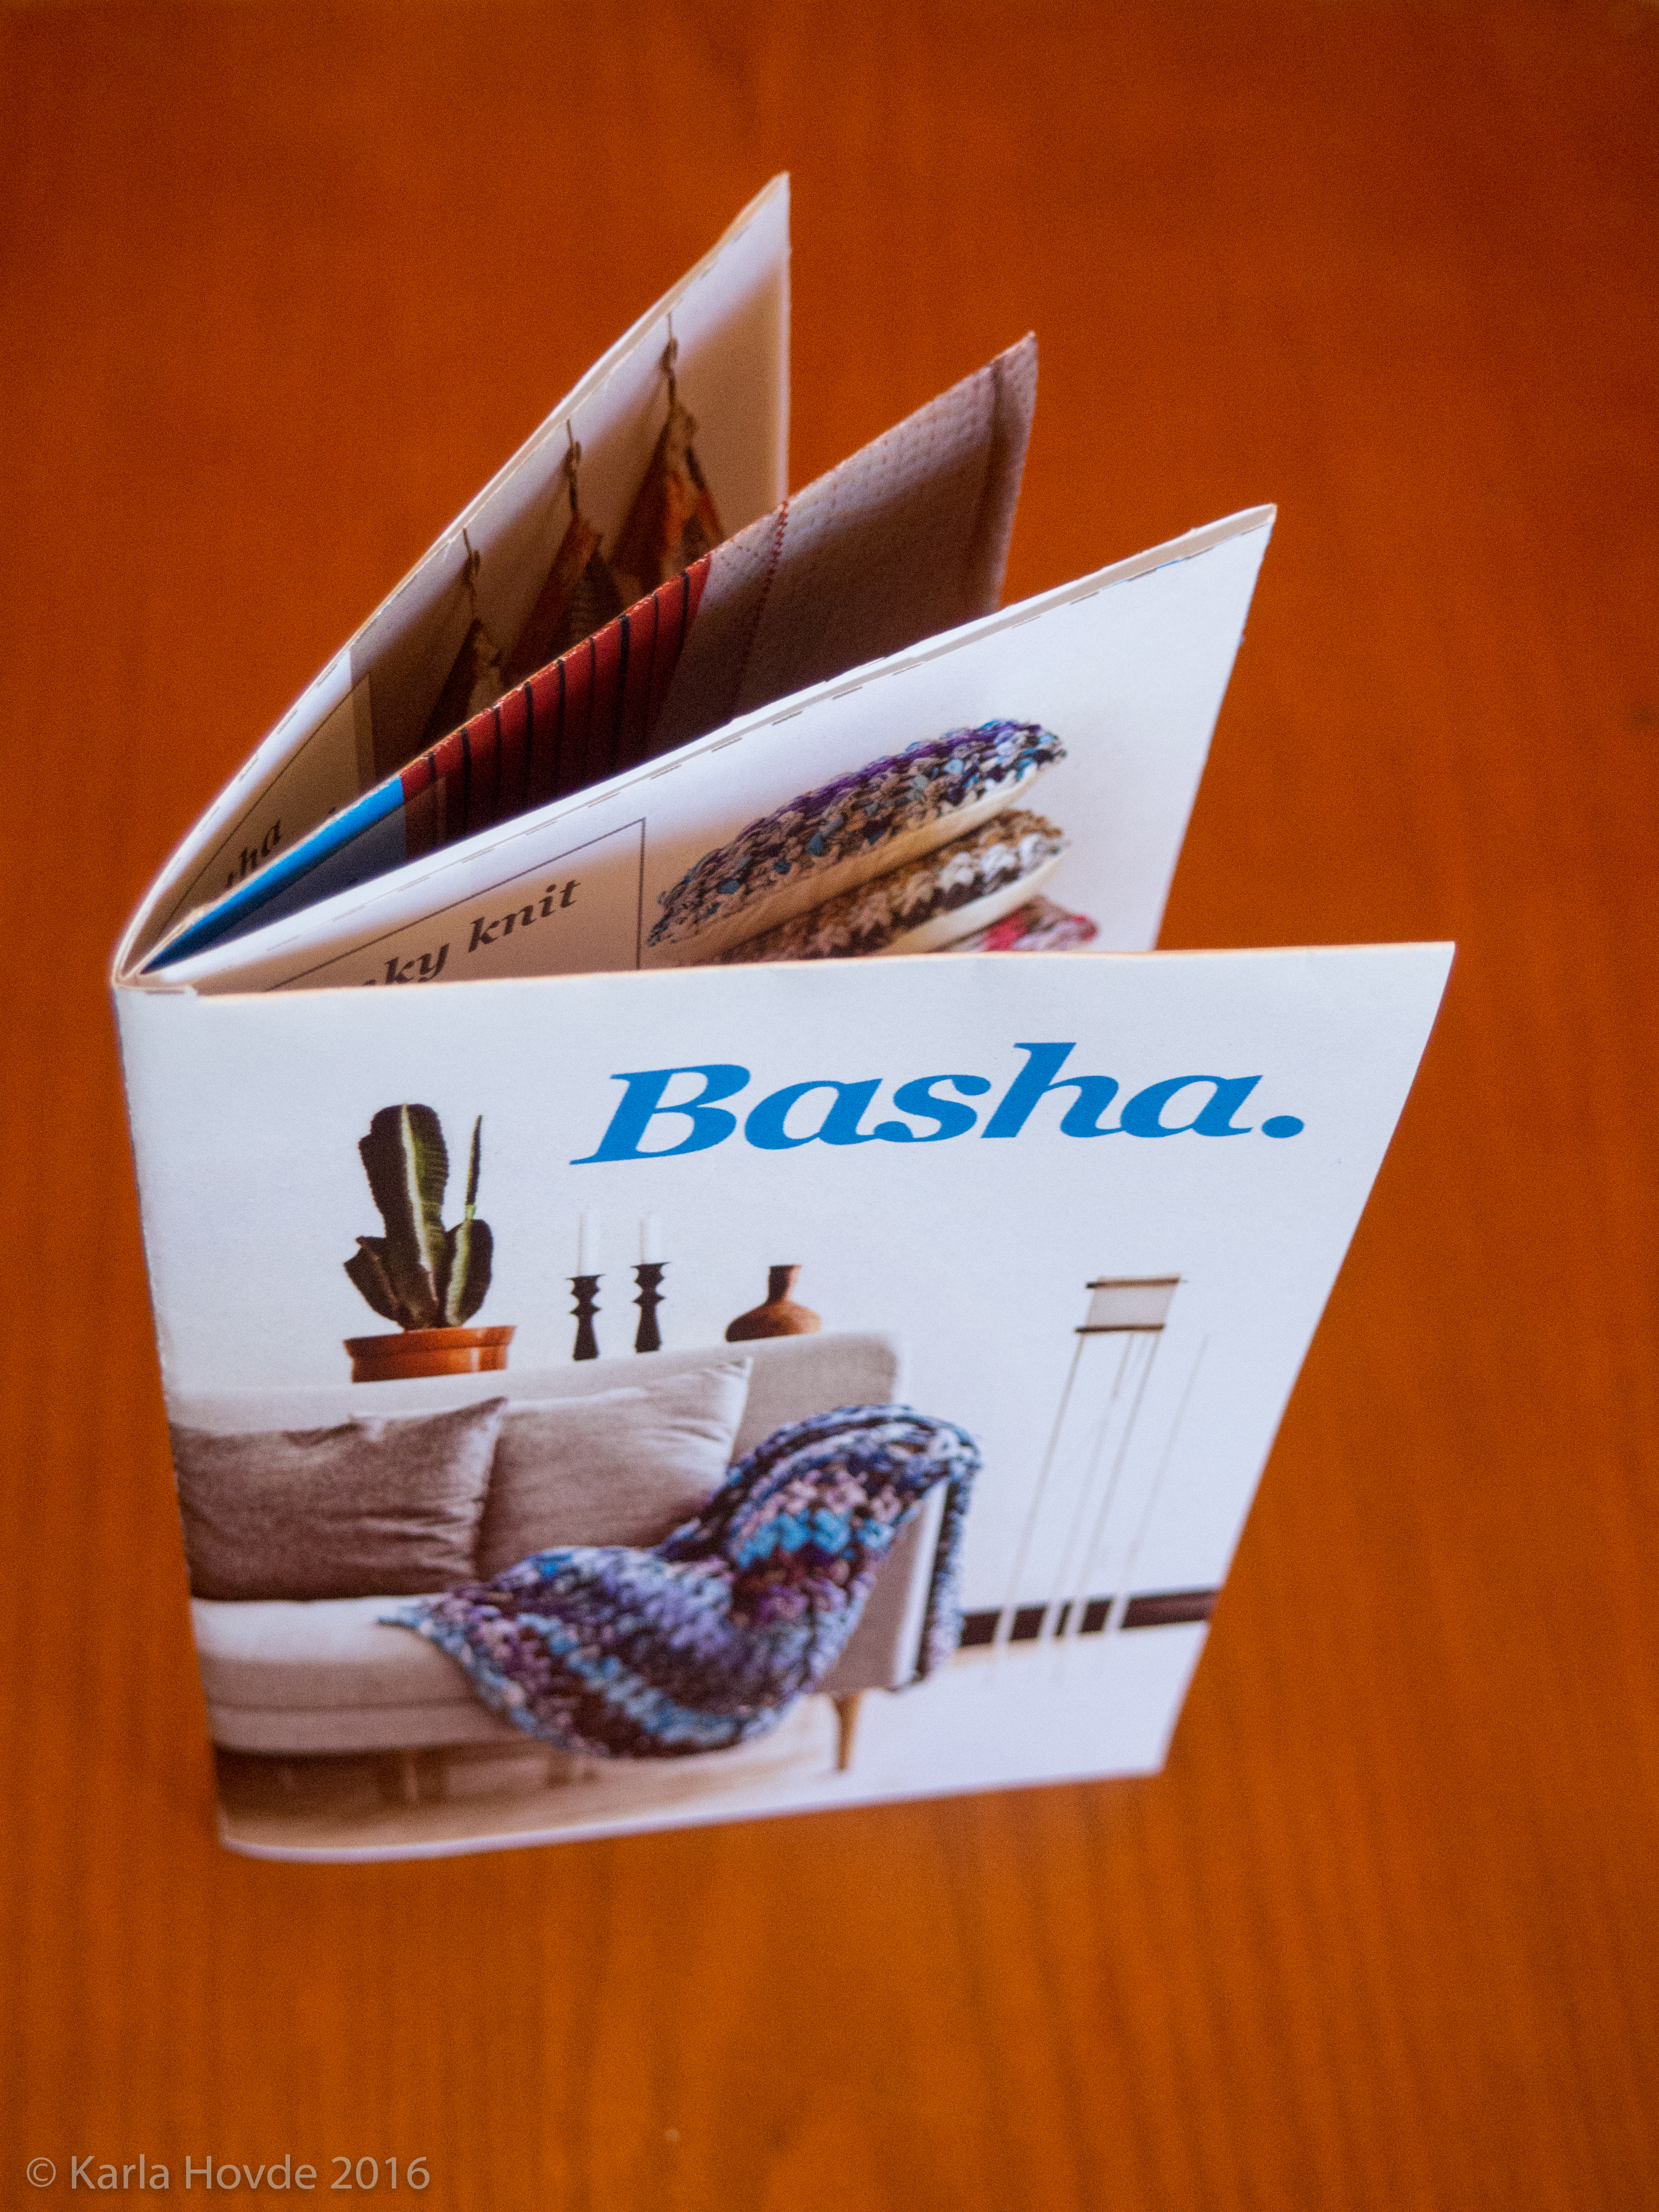 Photo of miniature Basha product catalogue made from one sheet of cleverly folded paper